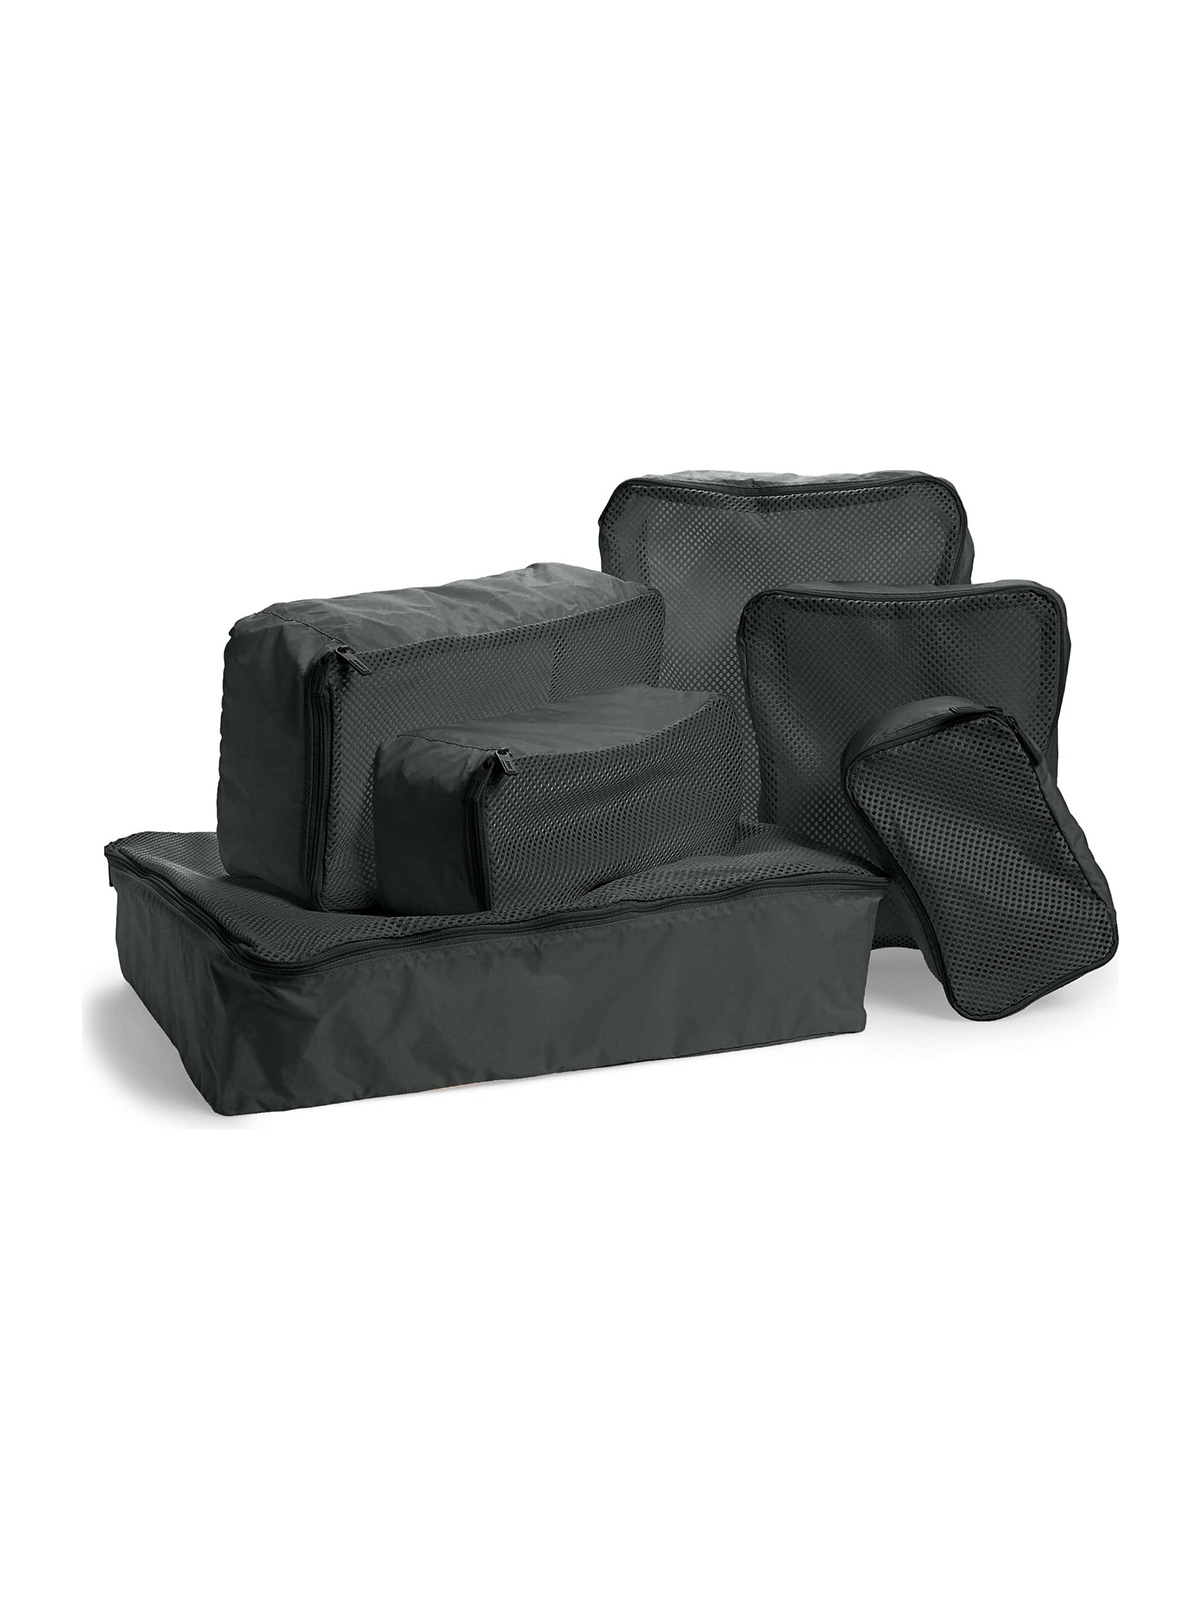 Away Luggage at Nordstrom, set of black packing cubes